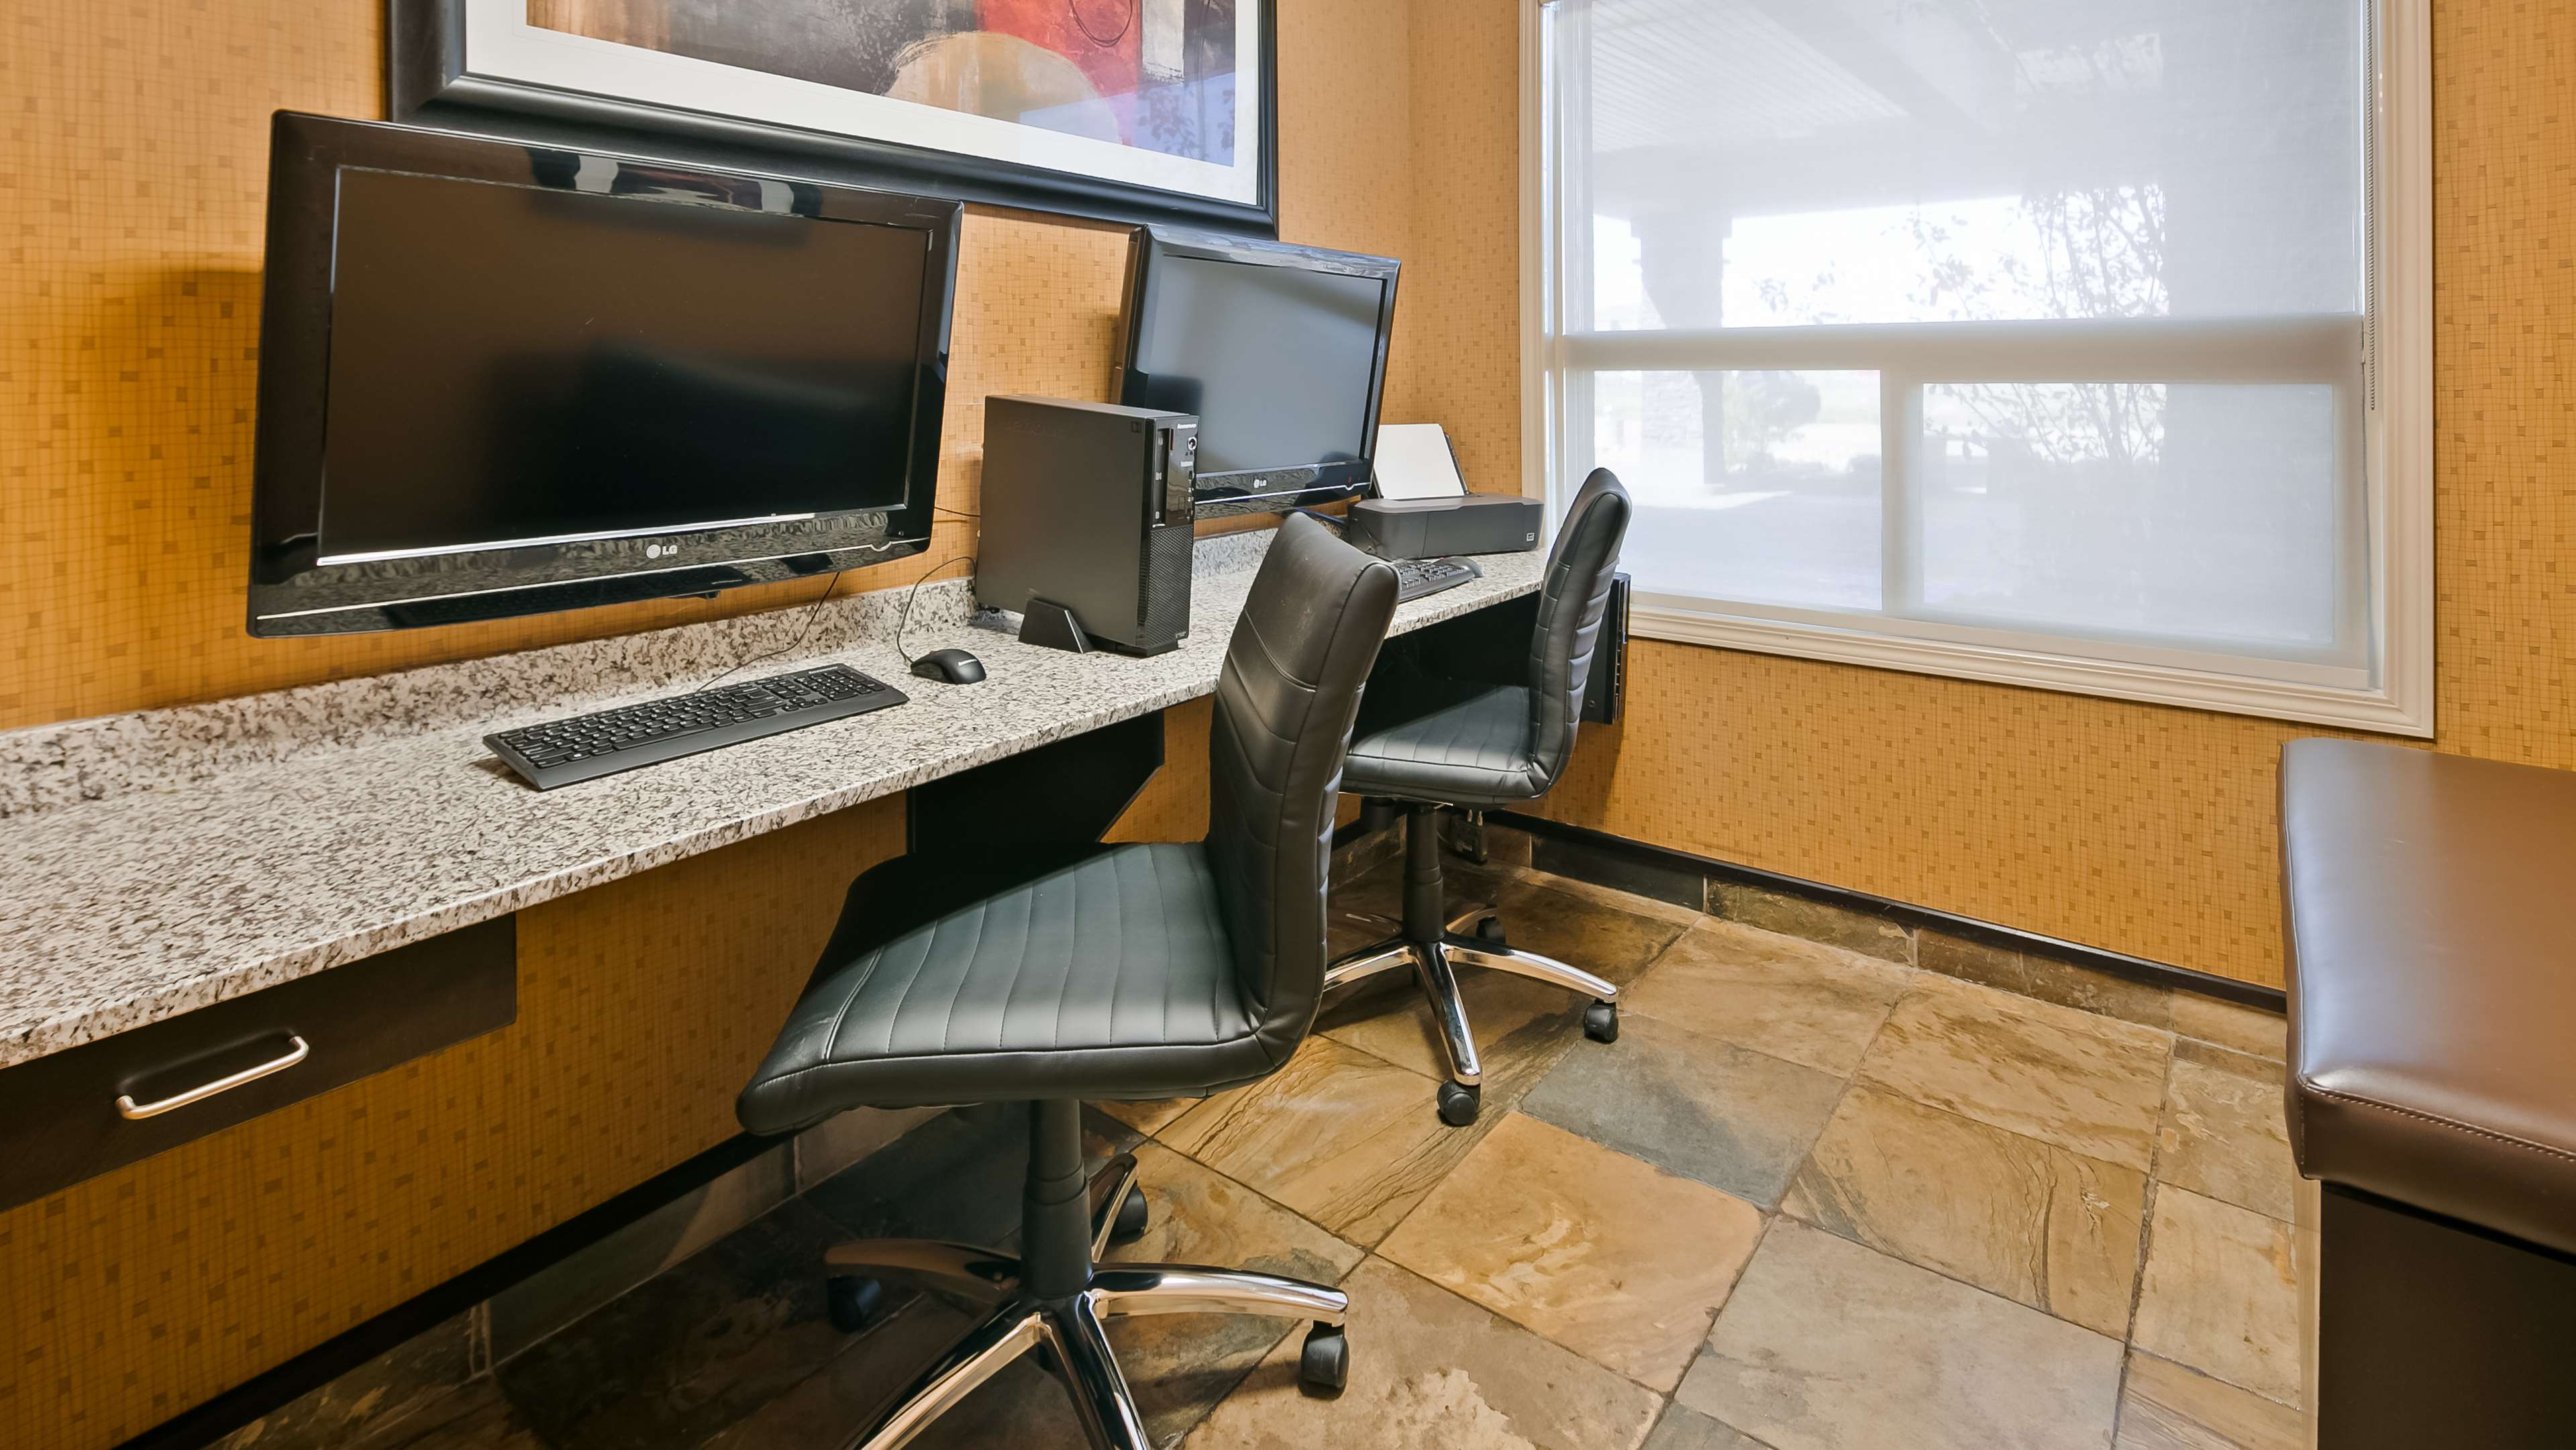 Stay productive during your time awa Best Western Wainwright Inn & Suites Wainwright (780)845-9934